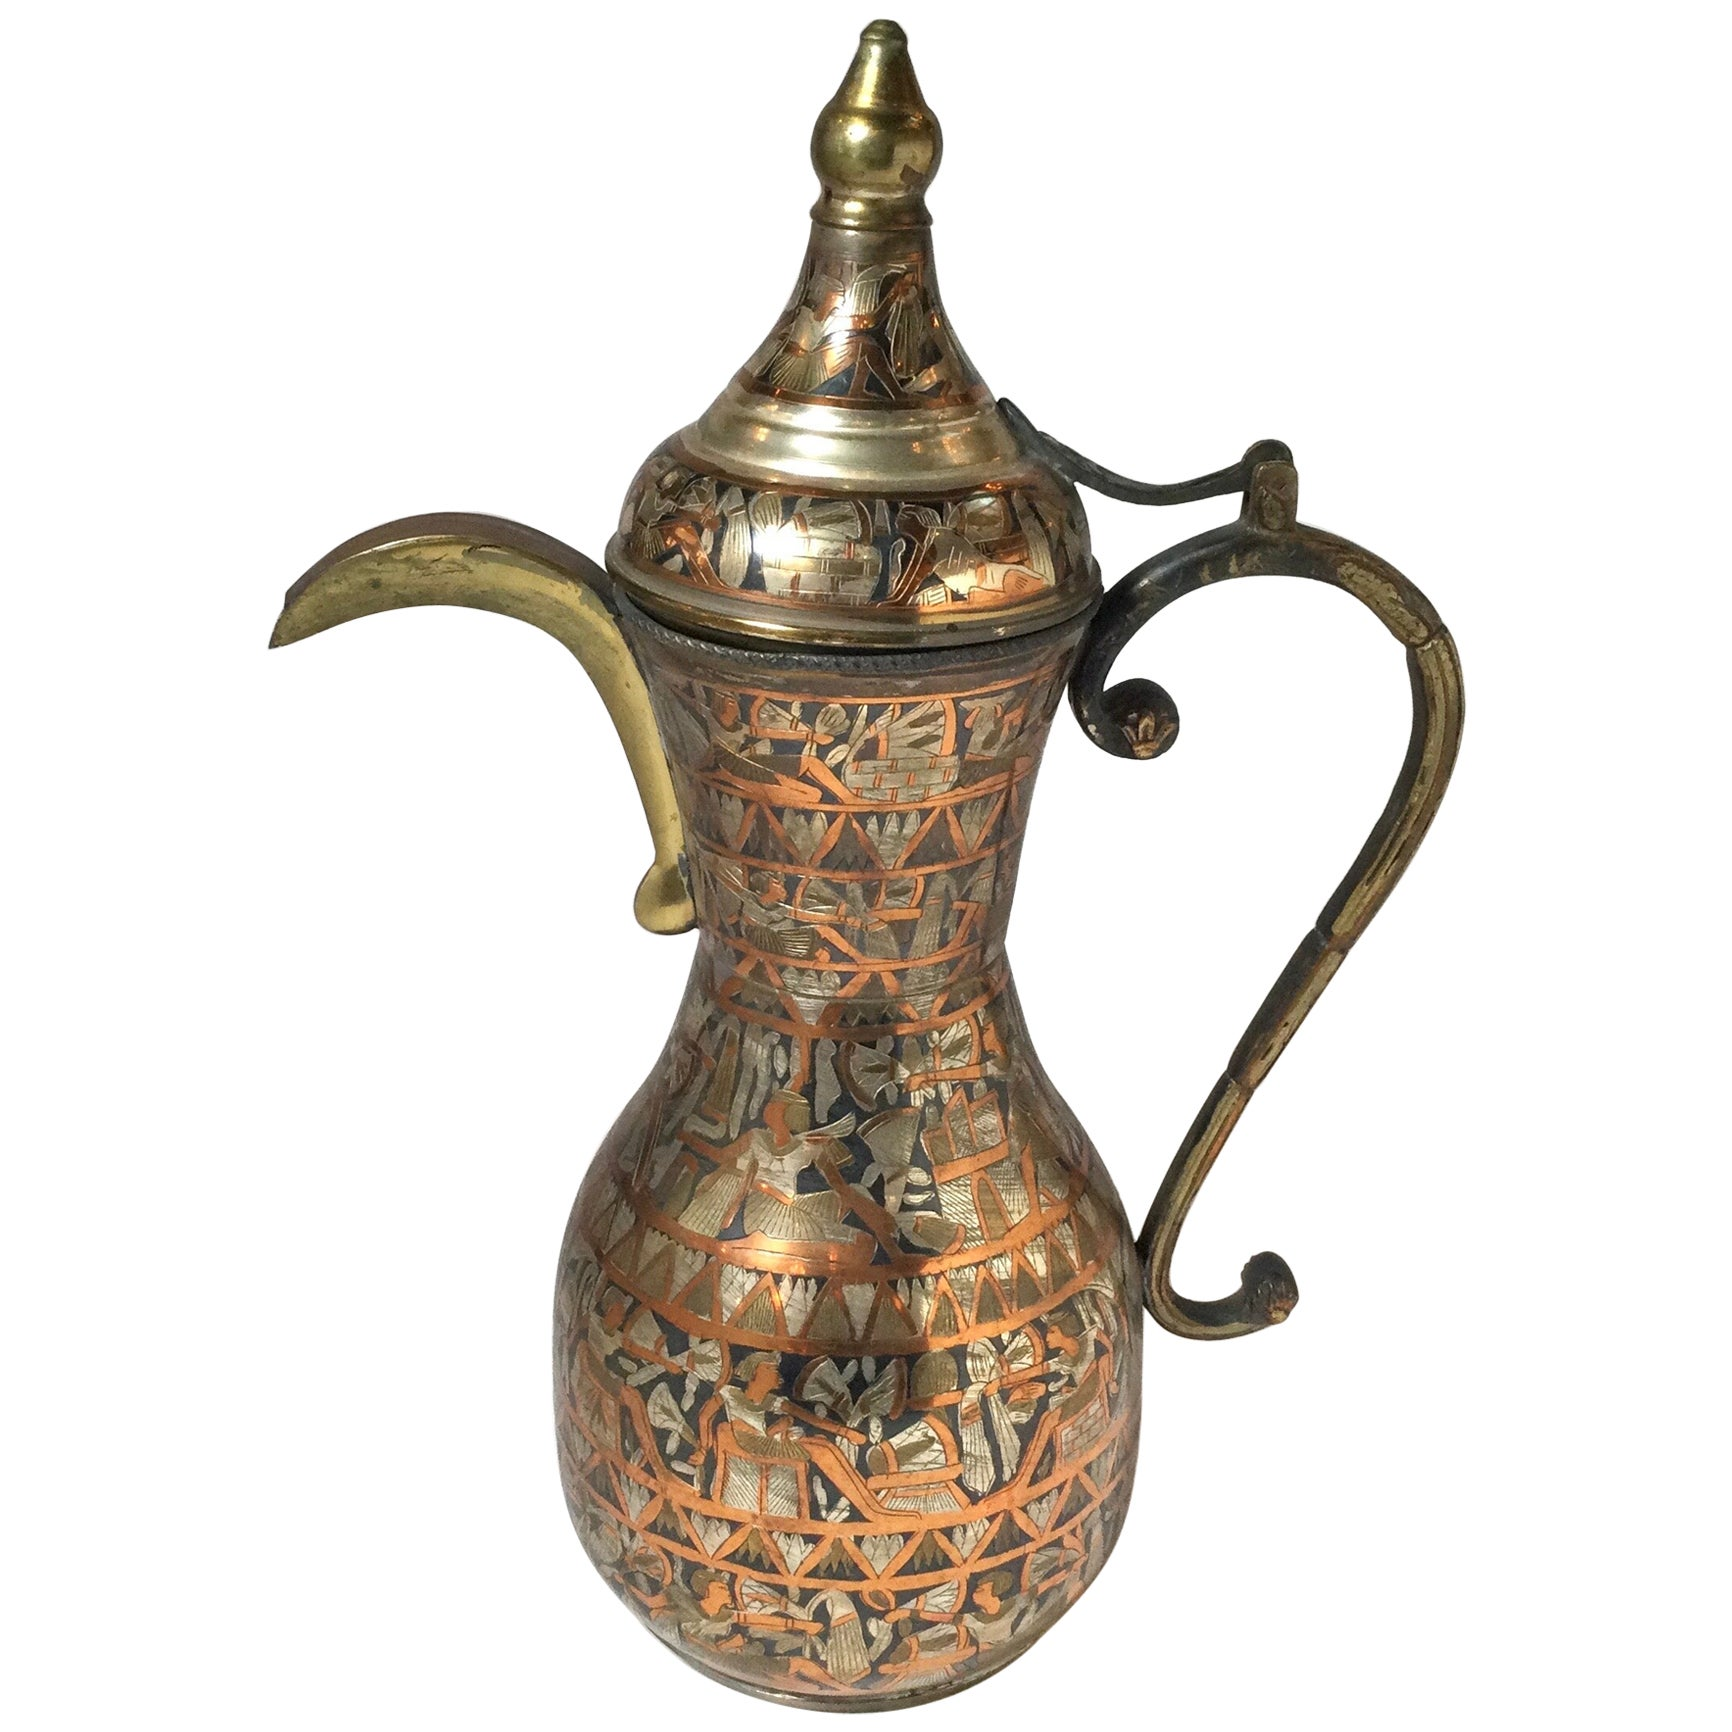 Anglo Indian Egyptian Revival Ewer Pitcher